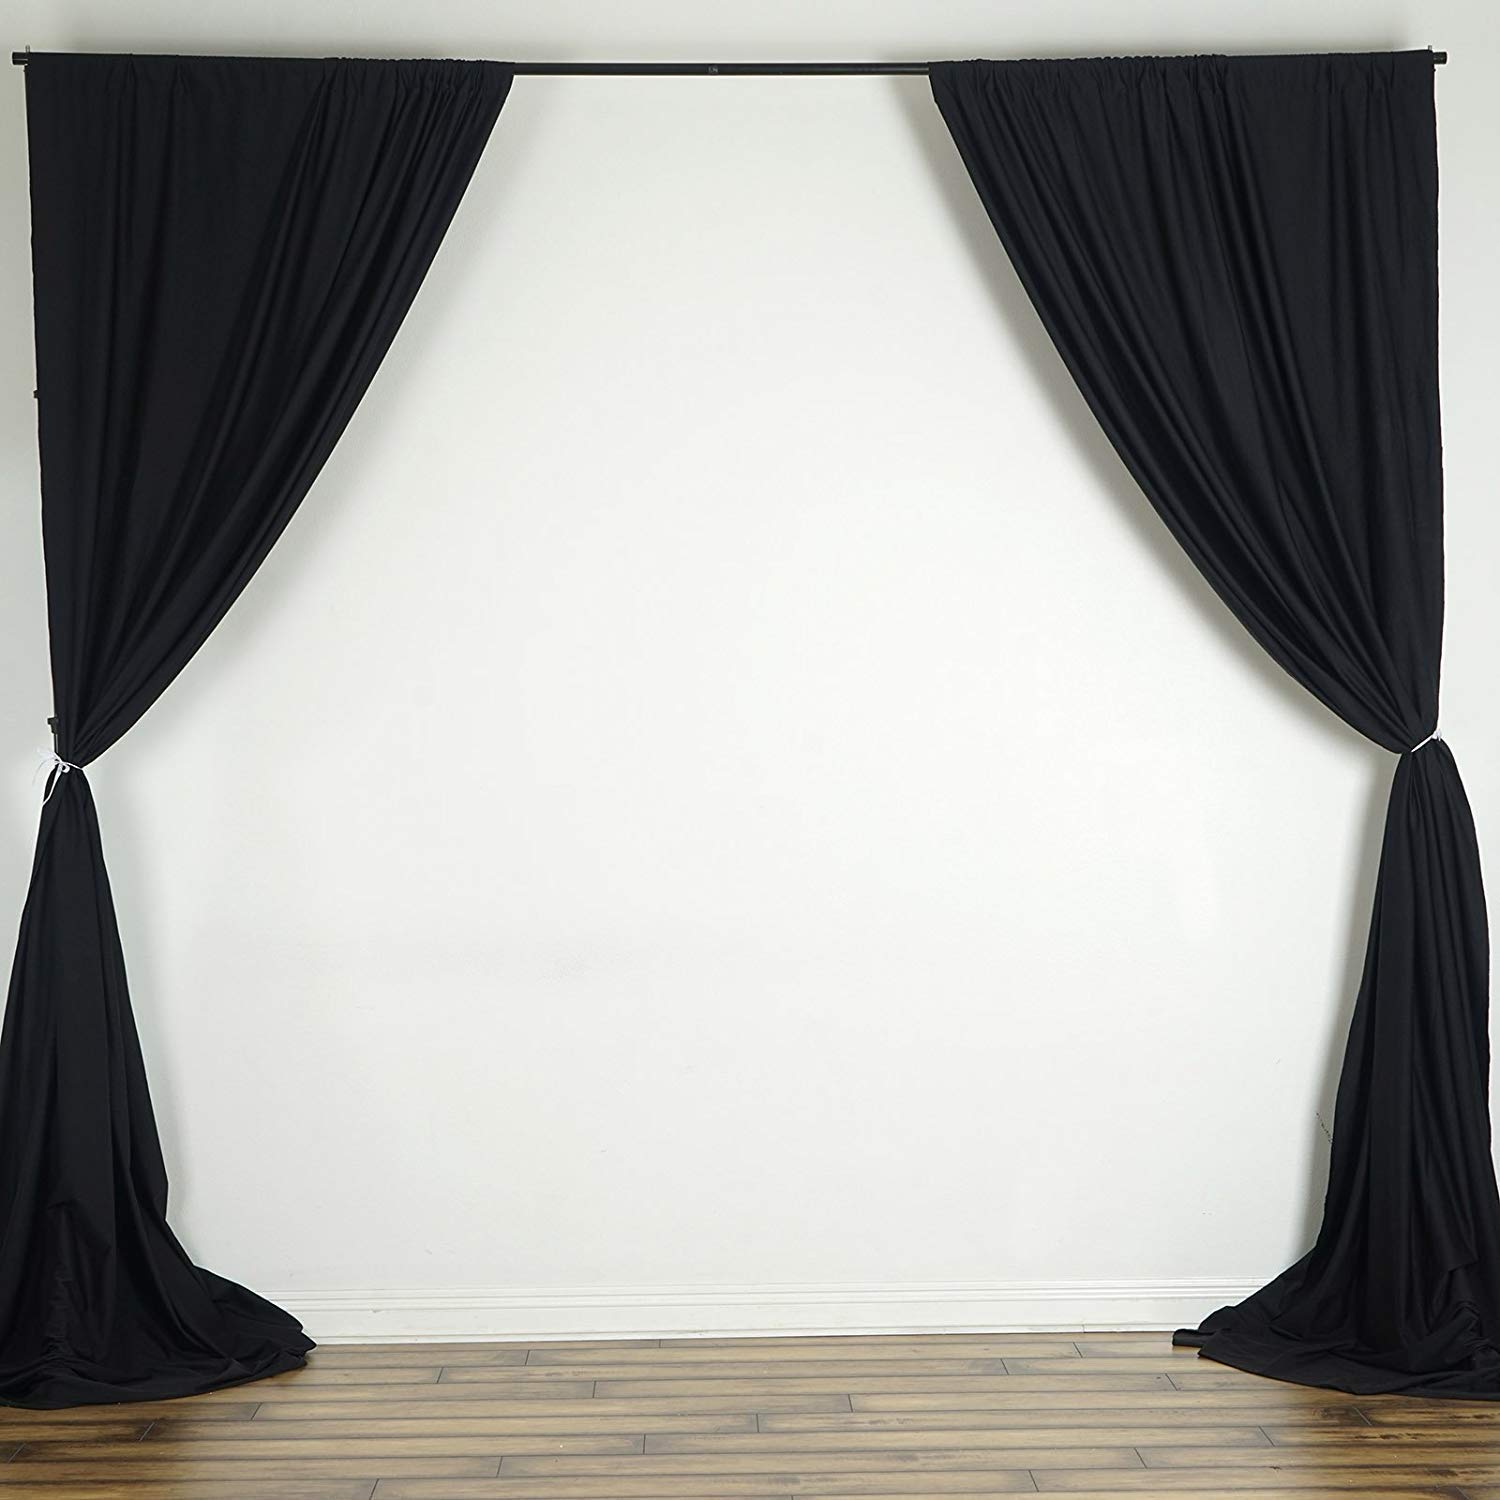 AK TRADING CO. 10 feet x 10 feet Polyester Backdrop Drapes Curtains Panels with Rod Pockets - Wedding Ceremony Party Home Window Decorations - Black by AK TRADING CO.